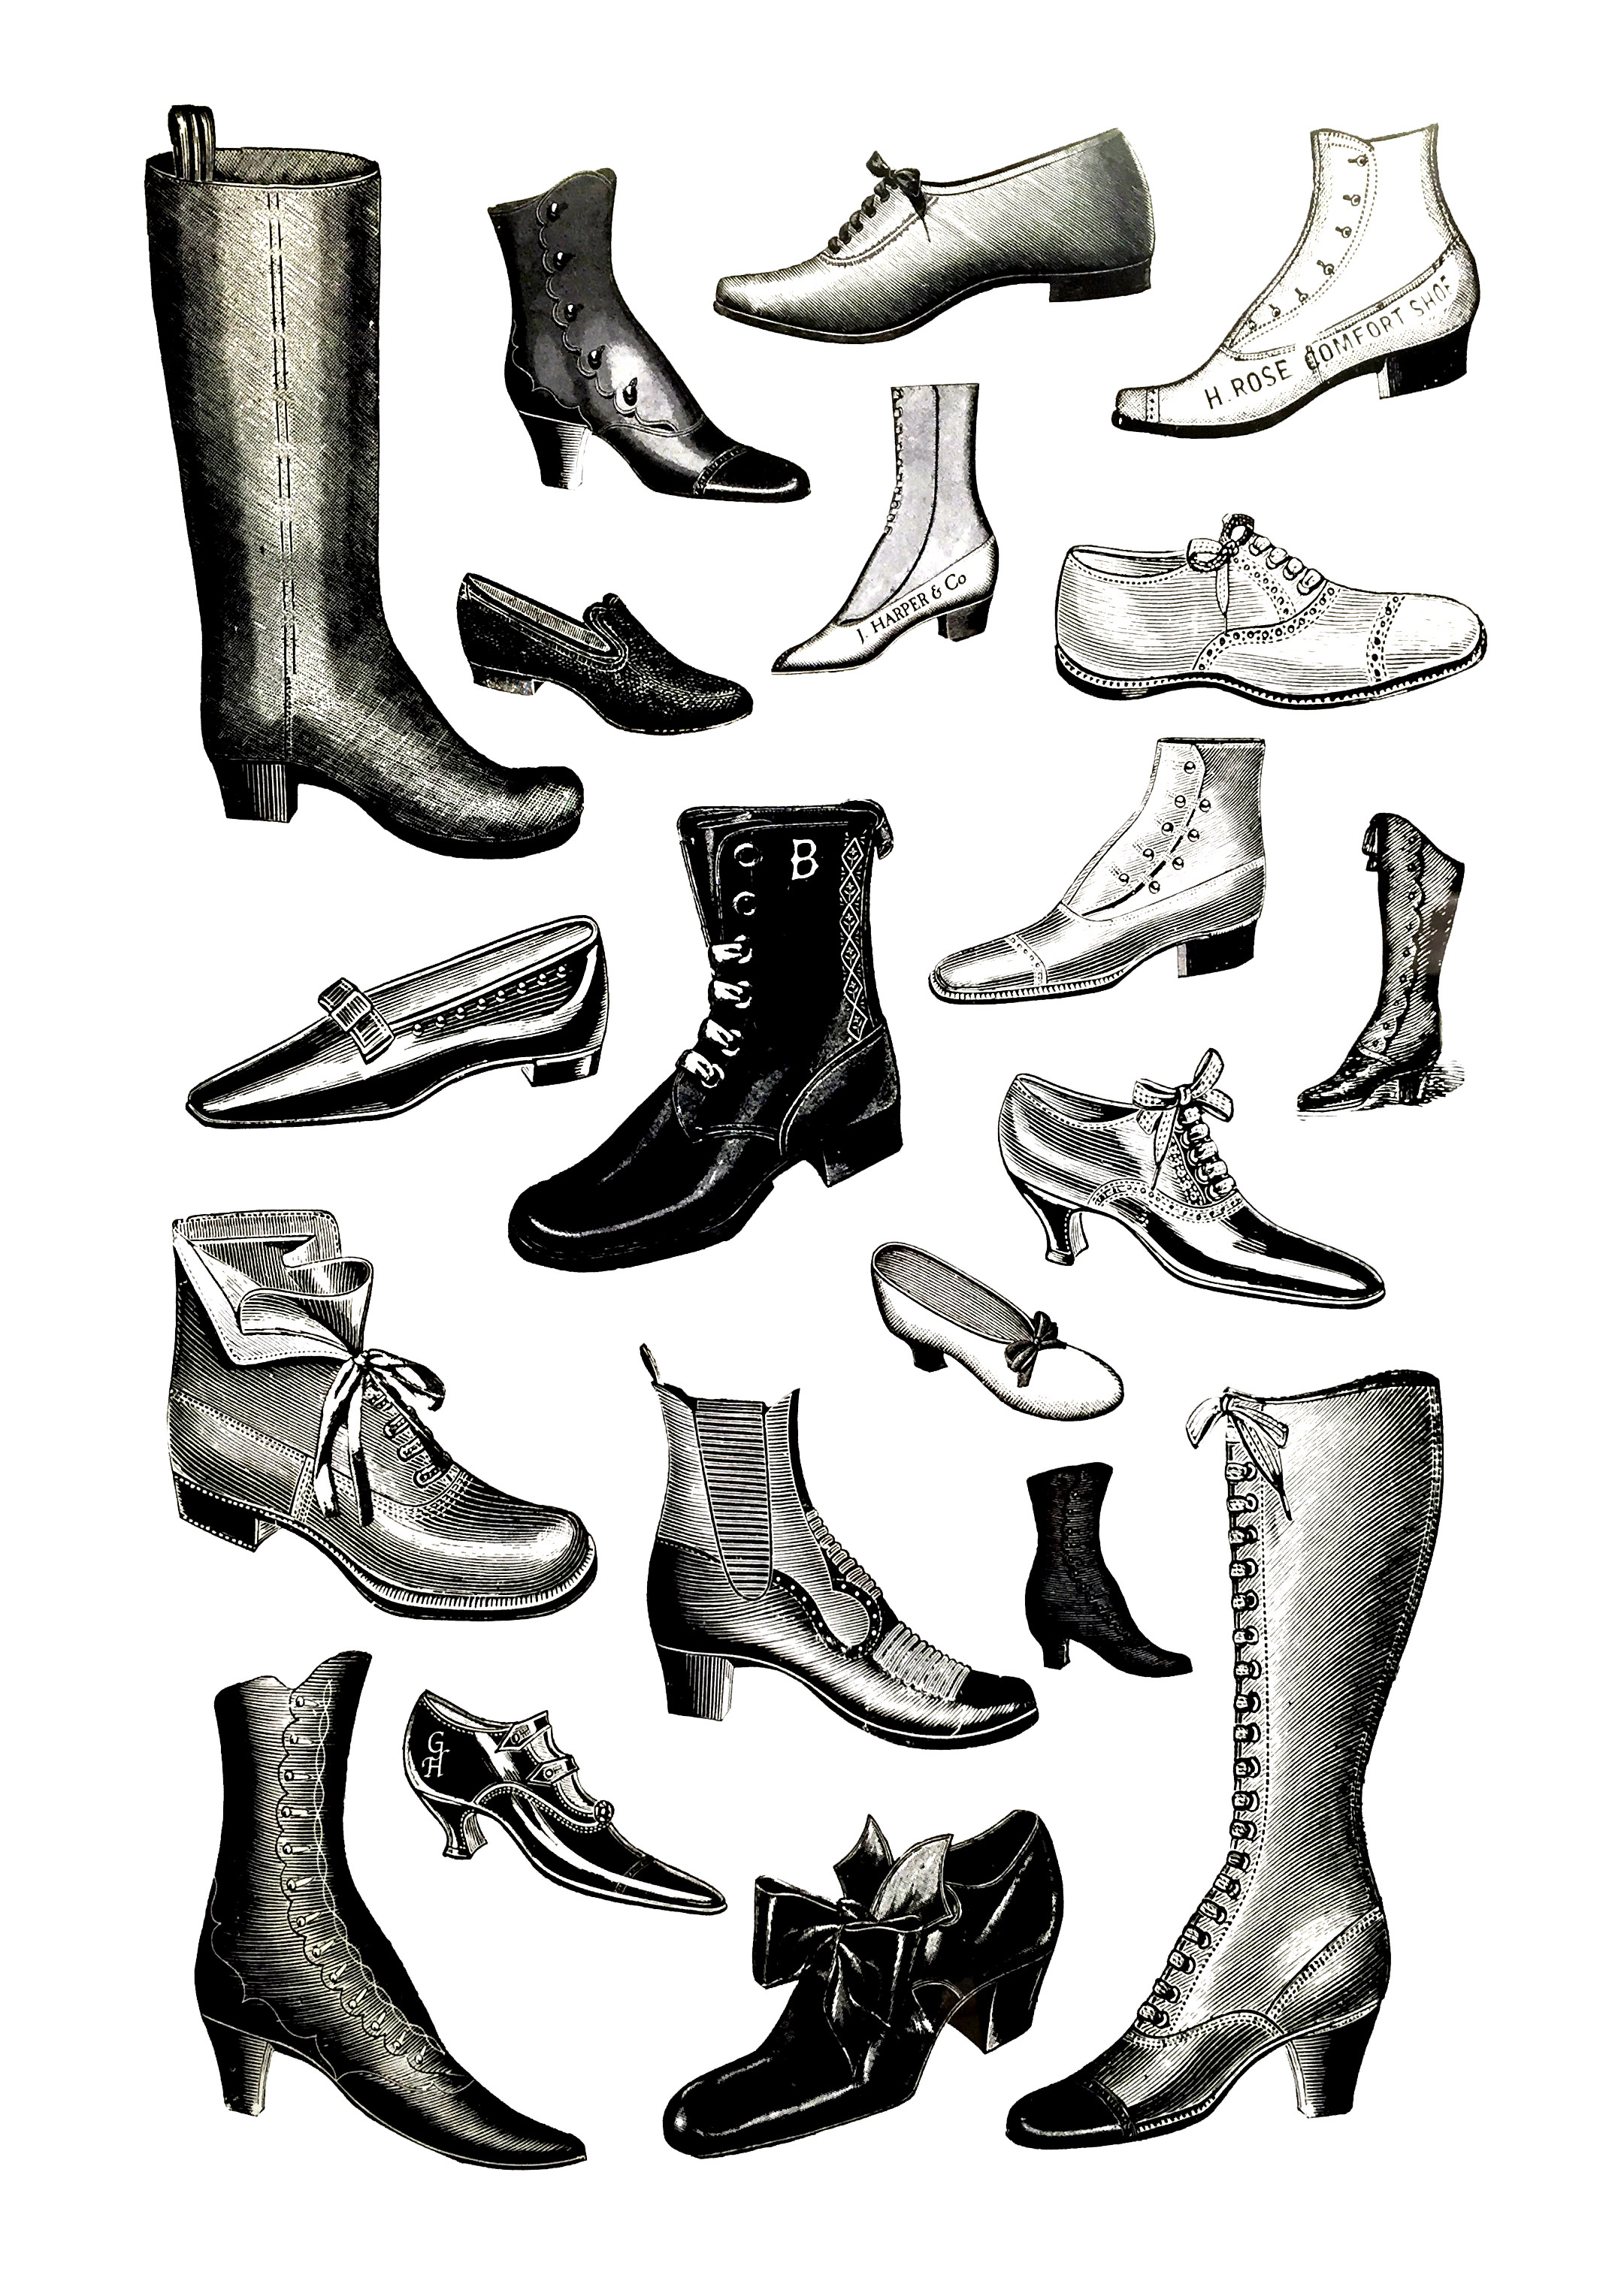 Different kind of shoes during the 19th century